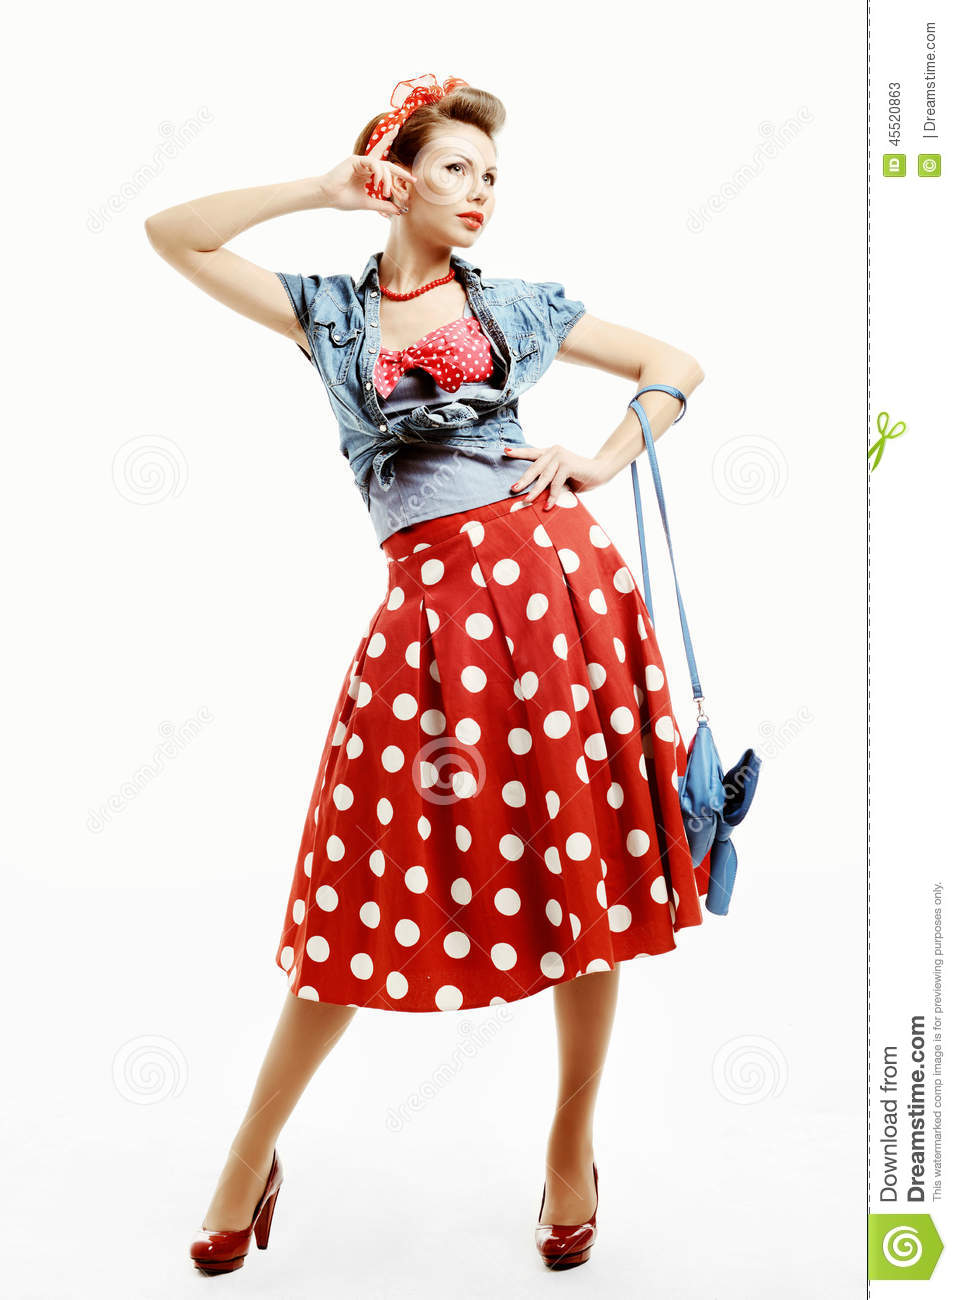 Pin Up Young Woman In Vintage American Style With A Clutch Stock Photo Image 45520863